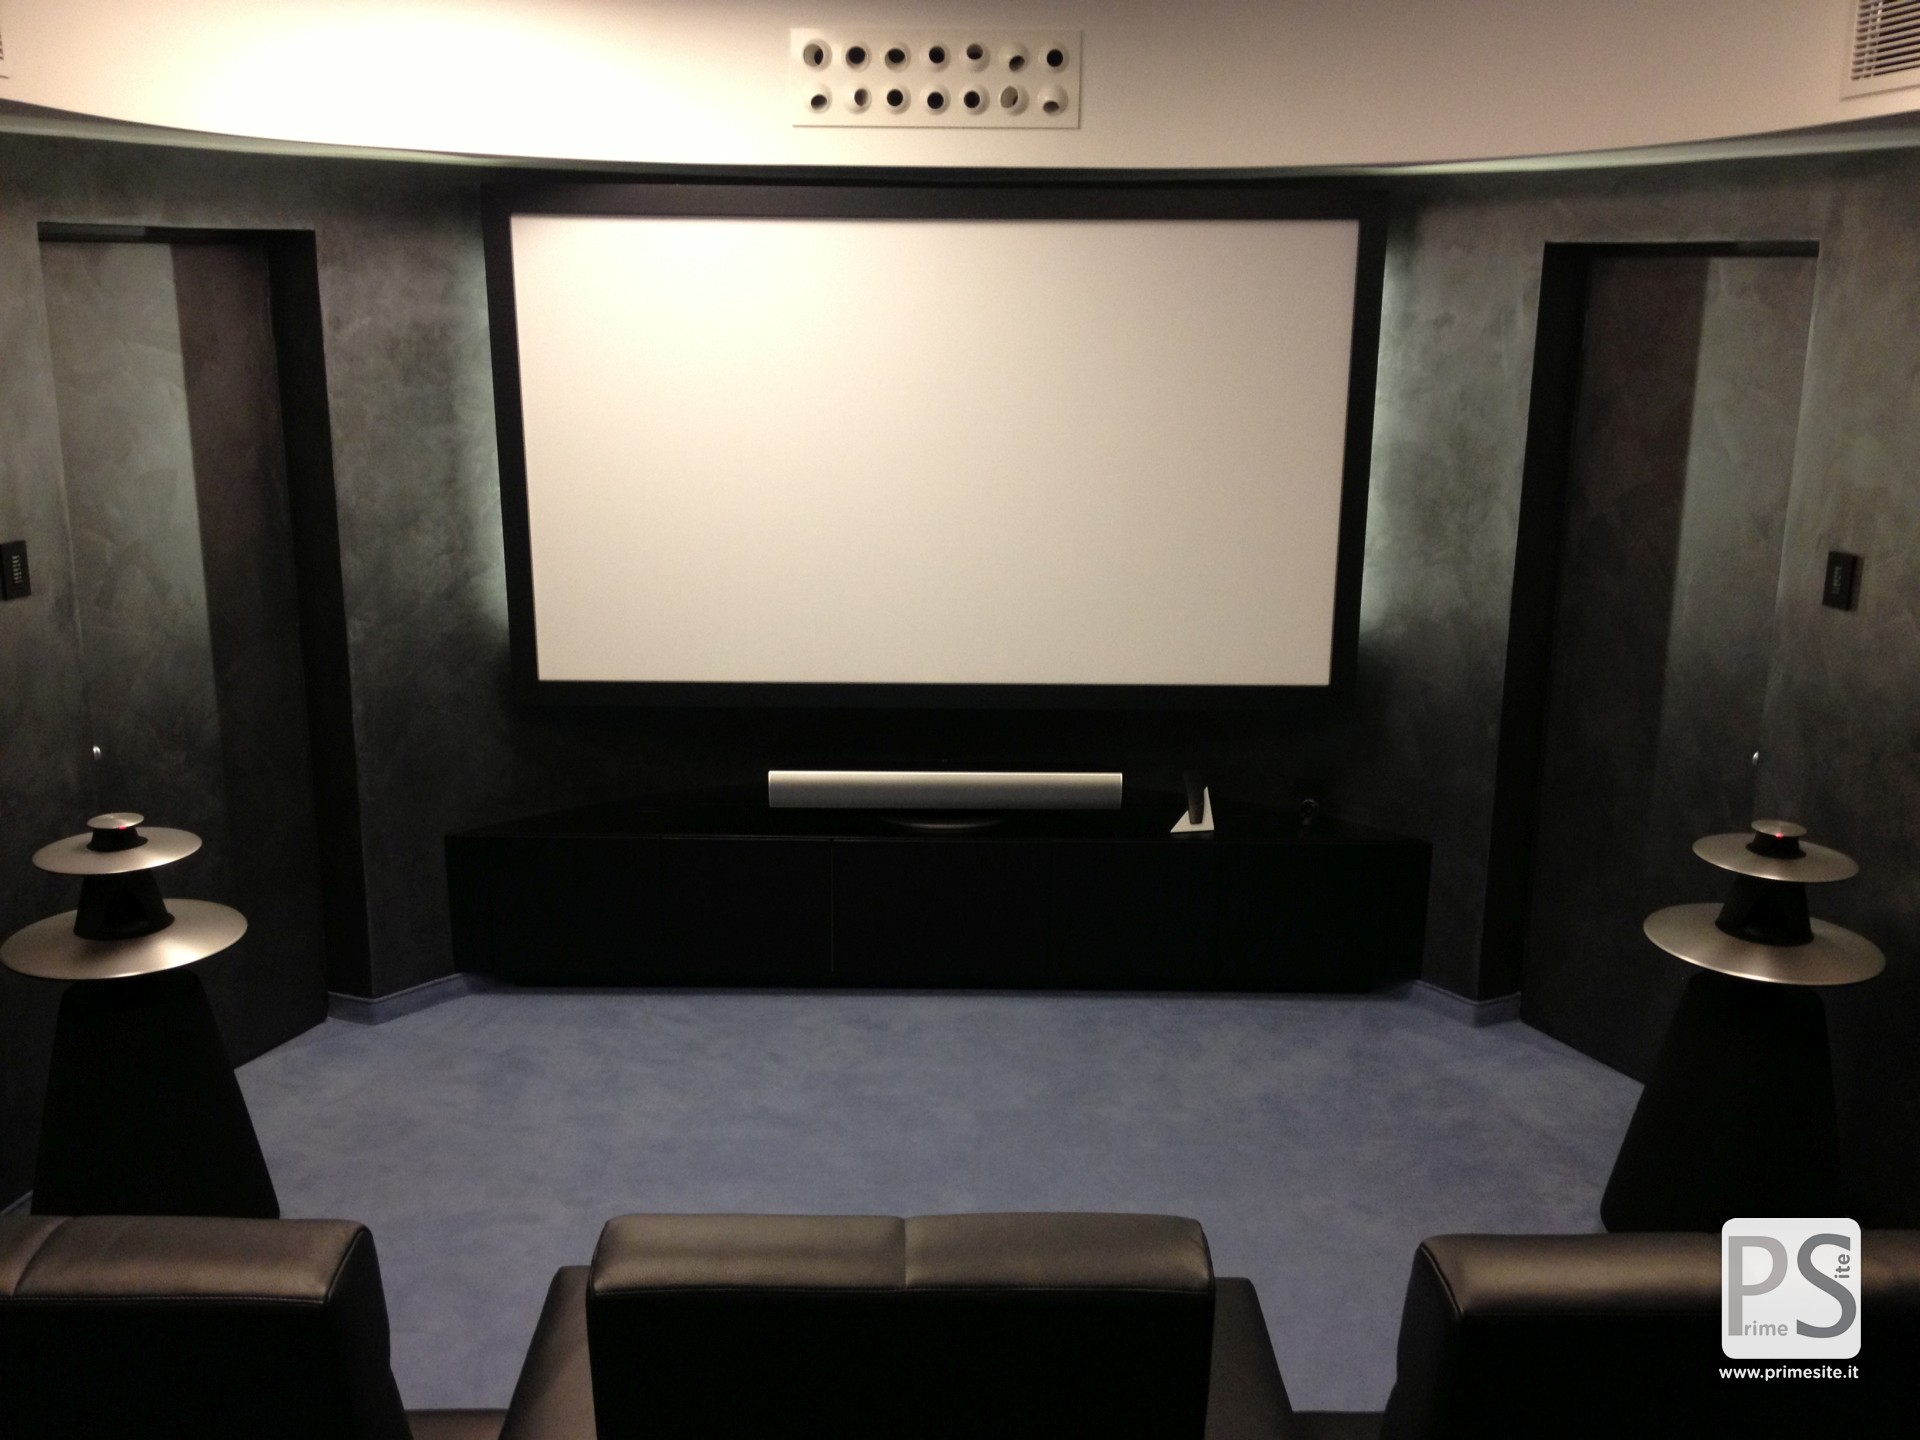 home cinema installations prime site bang olufsen milano. Black Bedroom Furniture Sets. Home Design Ideas